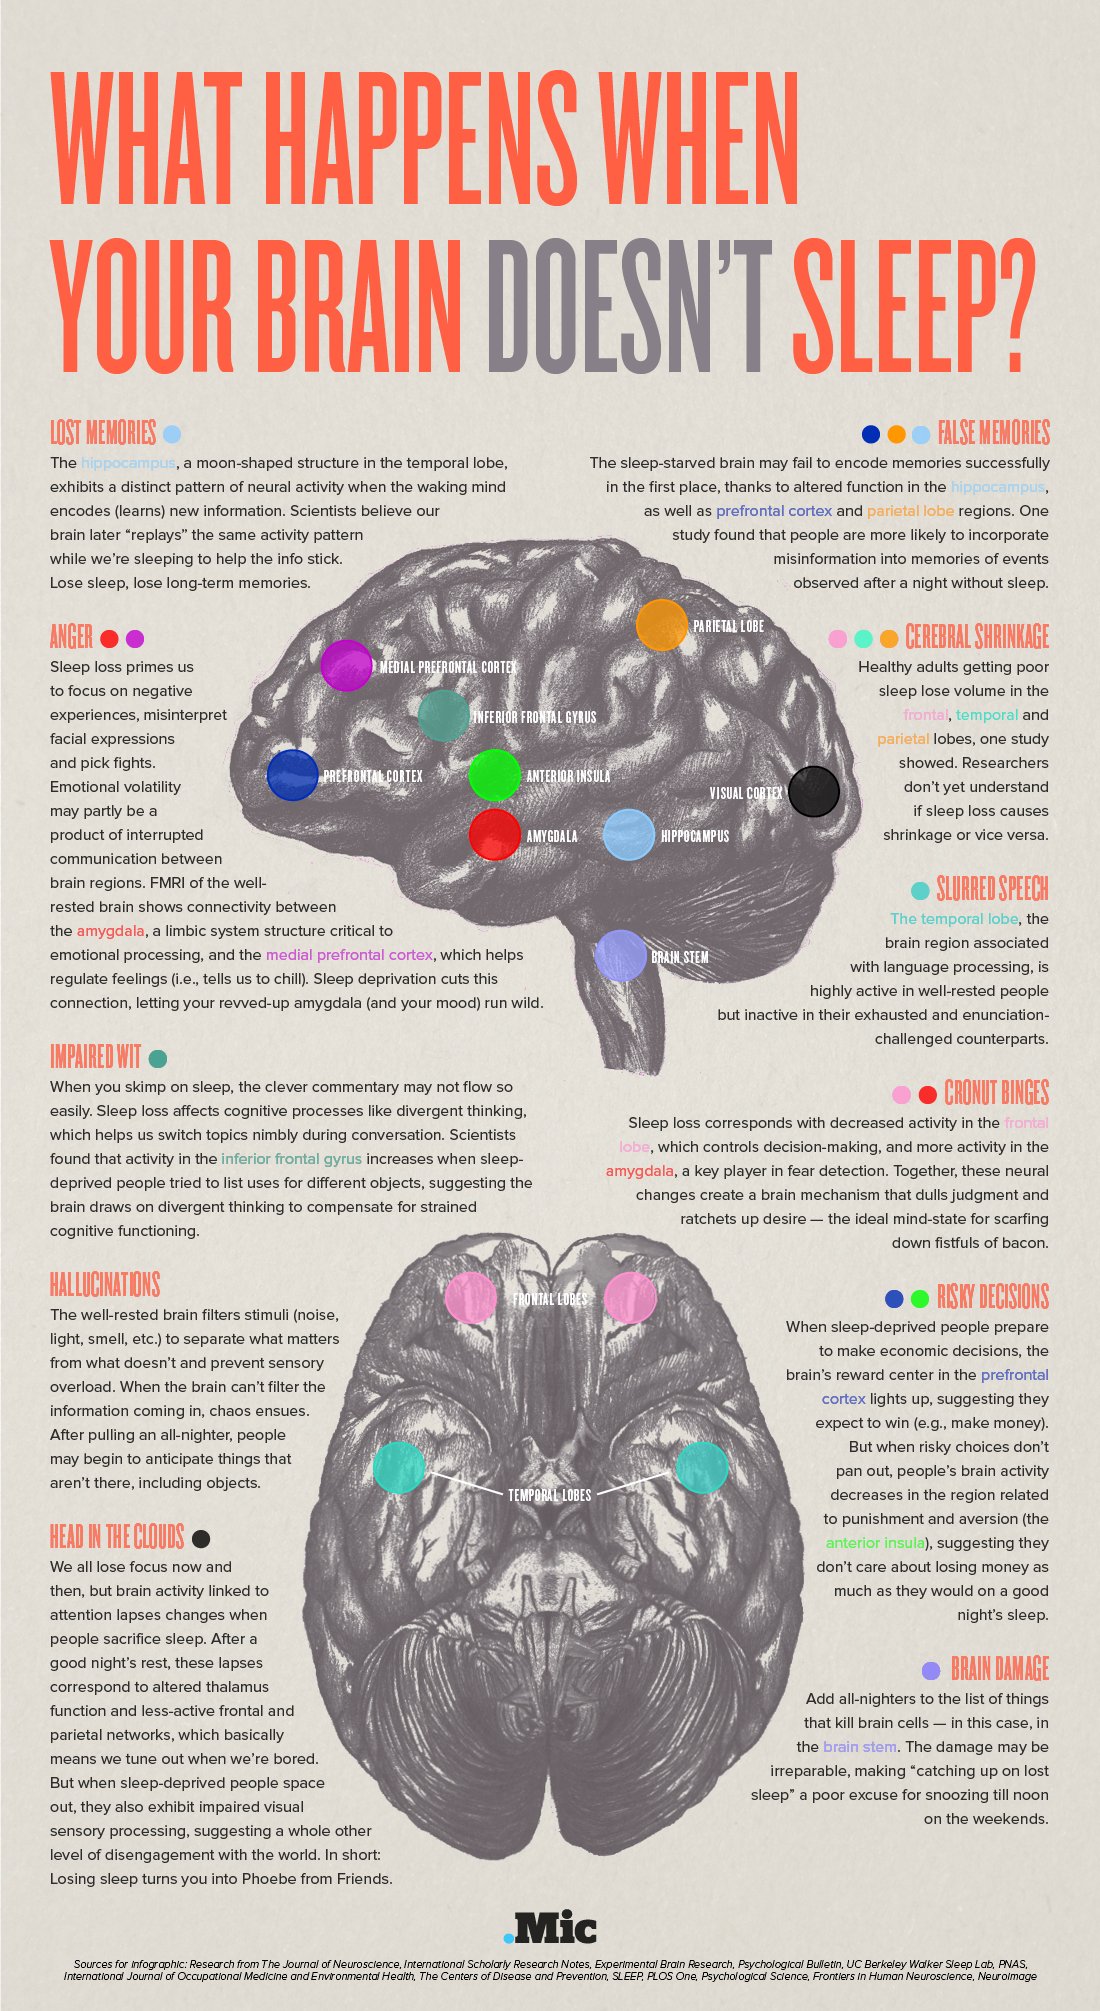 The effects of a lack of sleep on your brain.